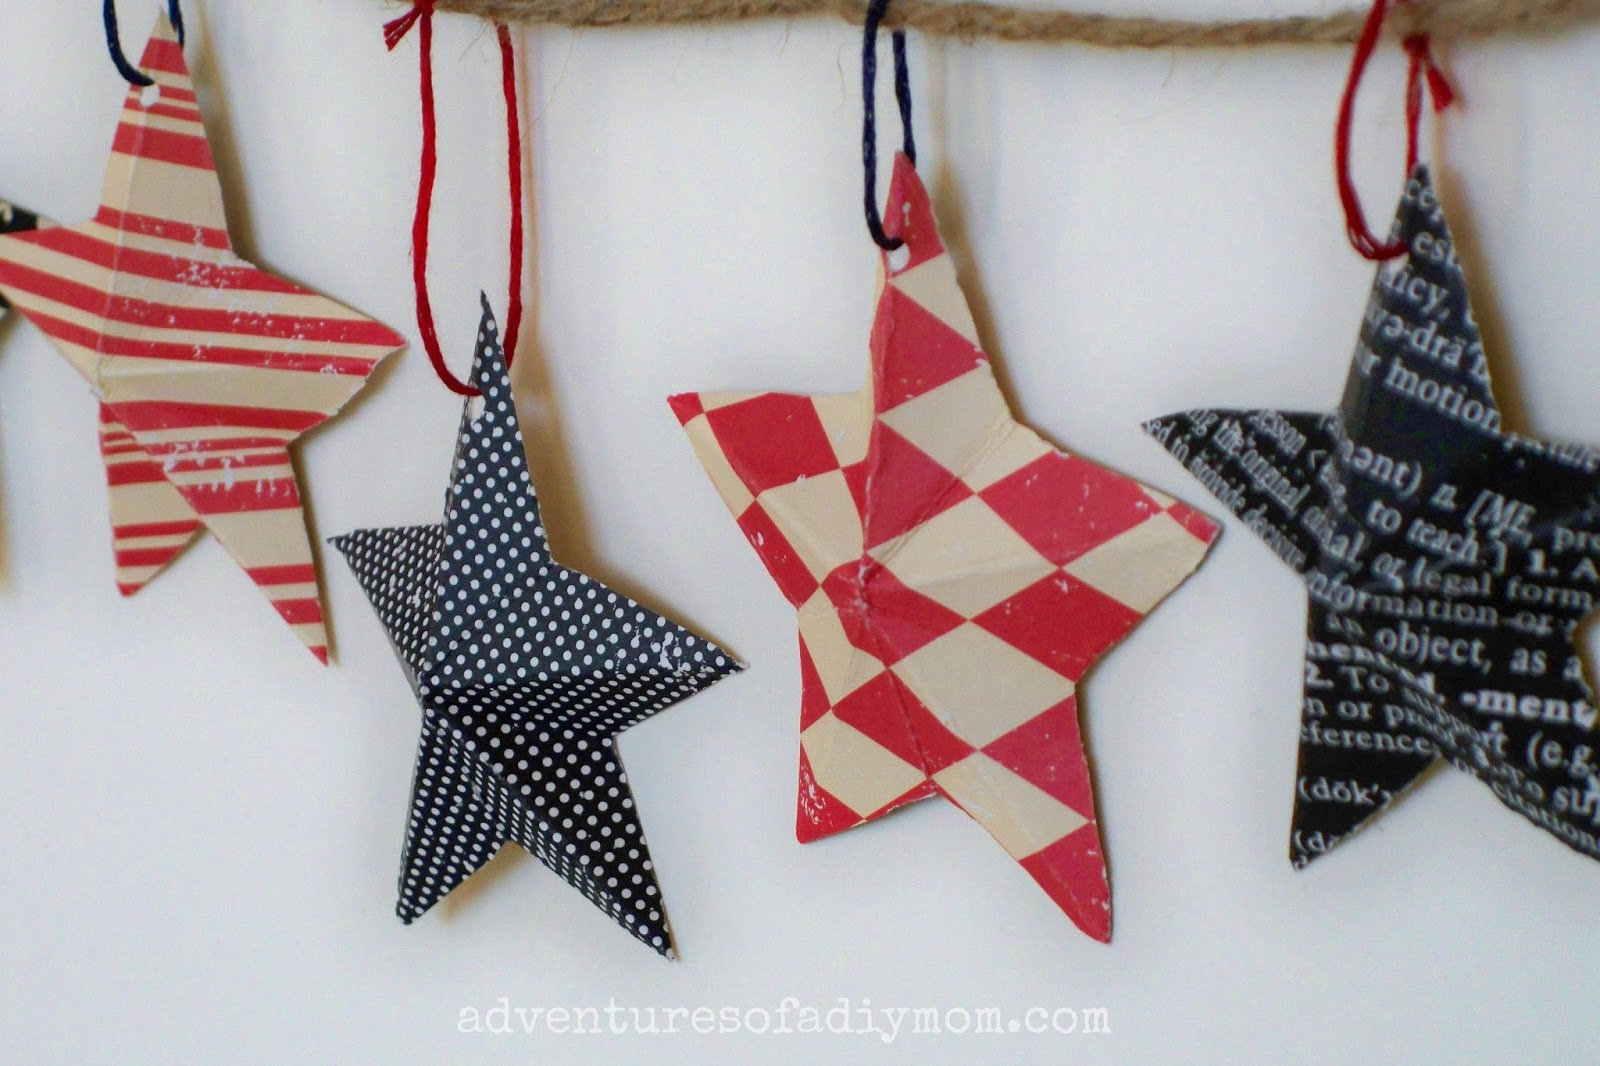 How to Make 3-D Paper Stars